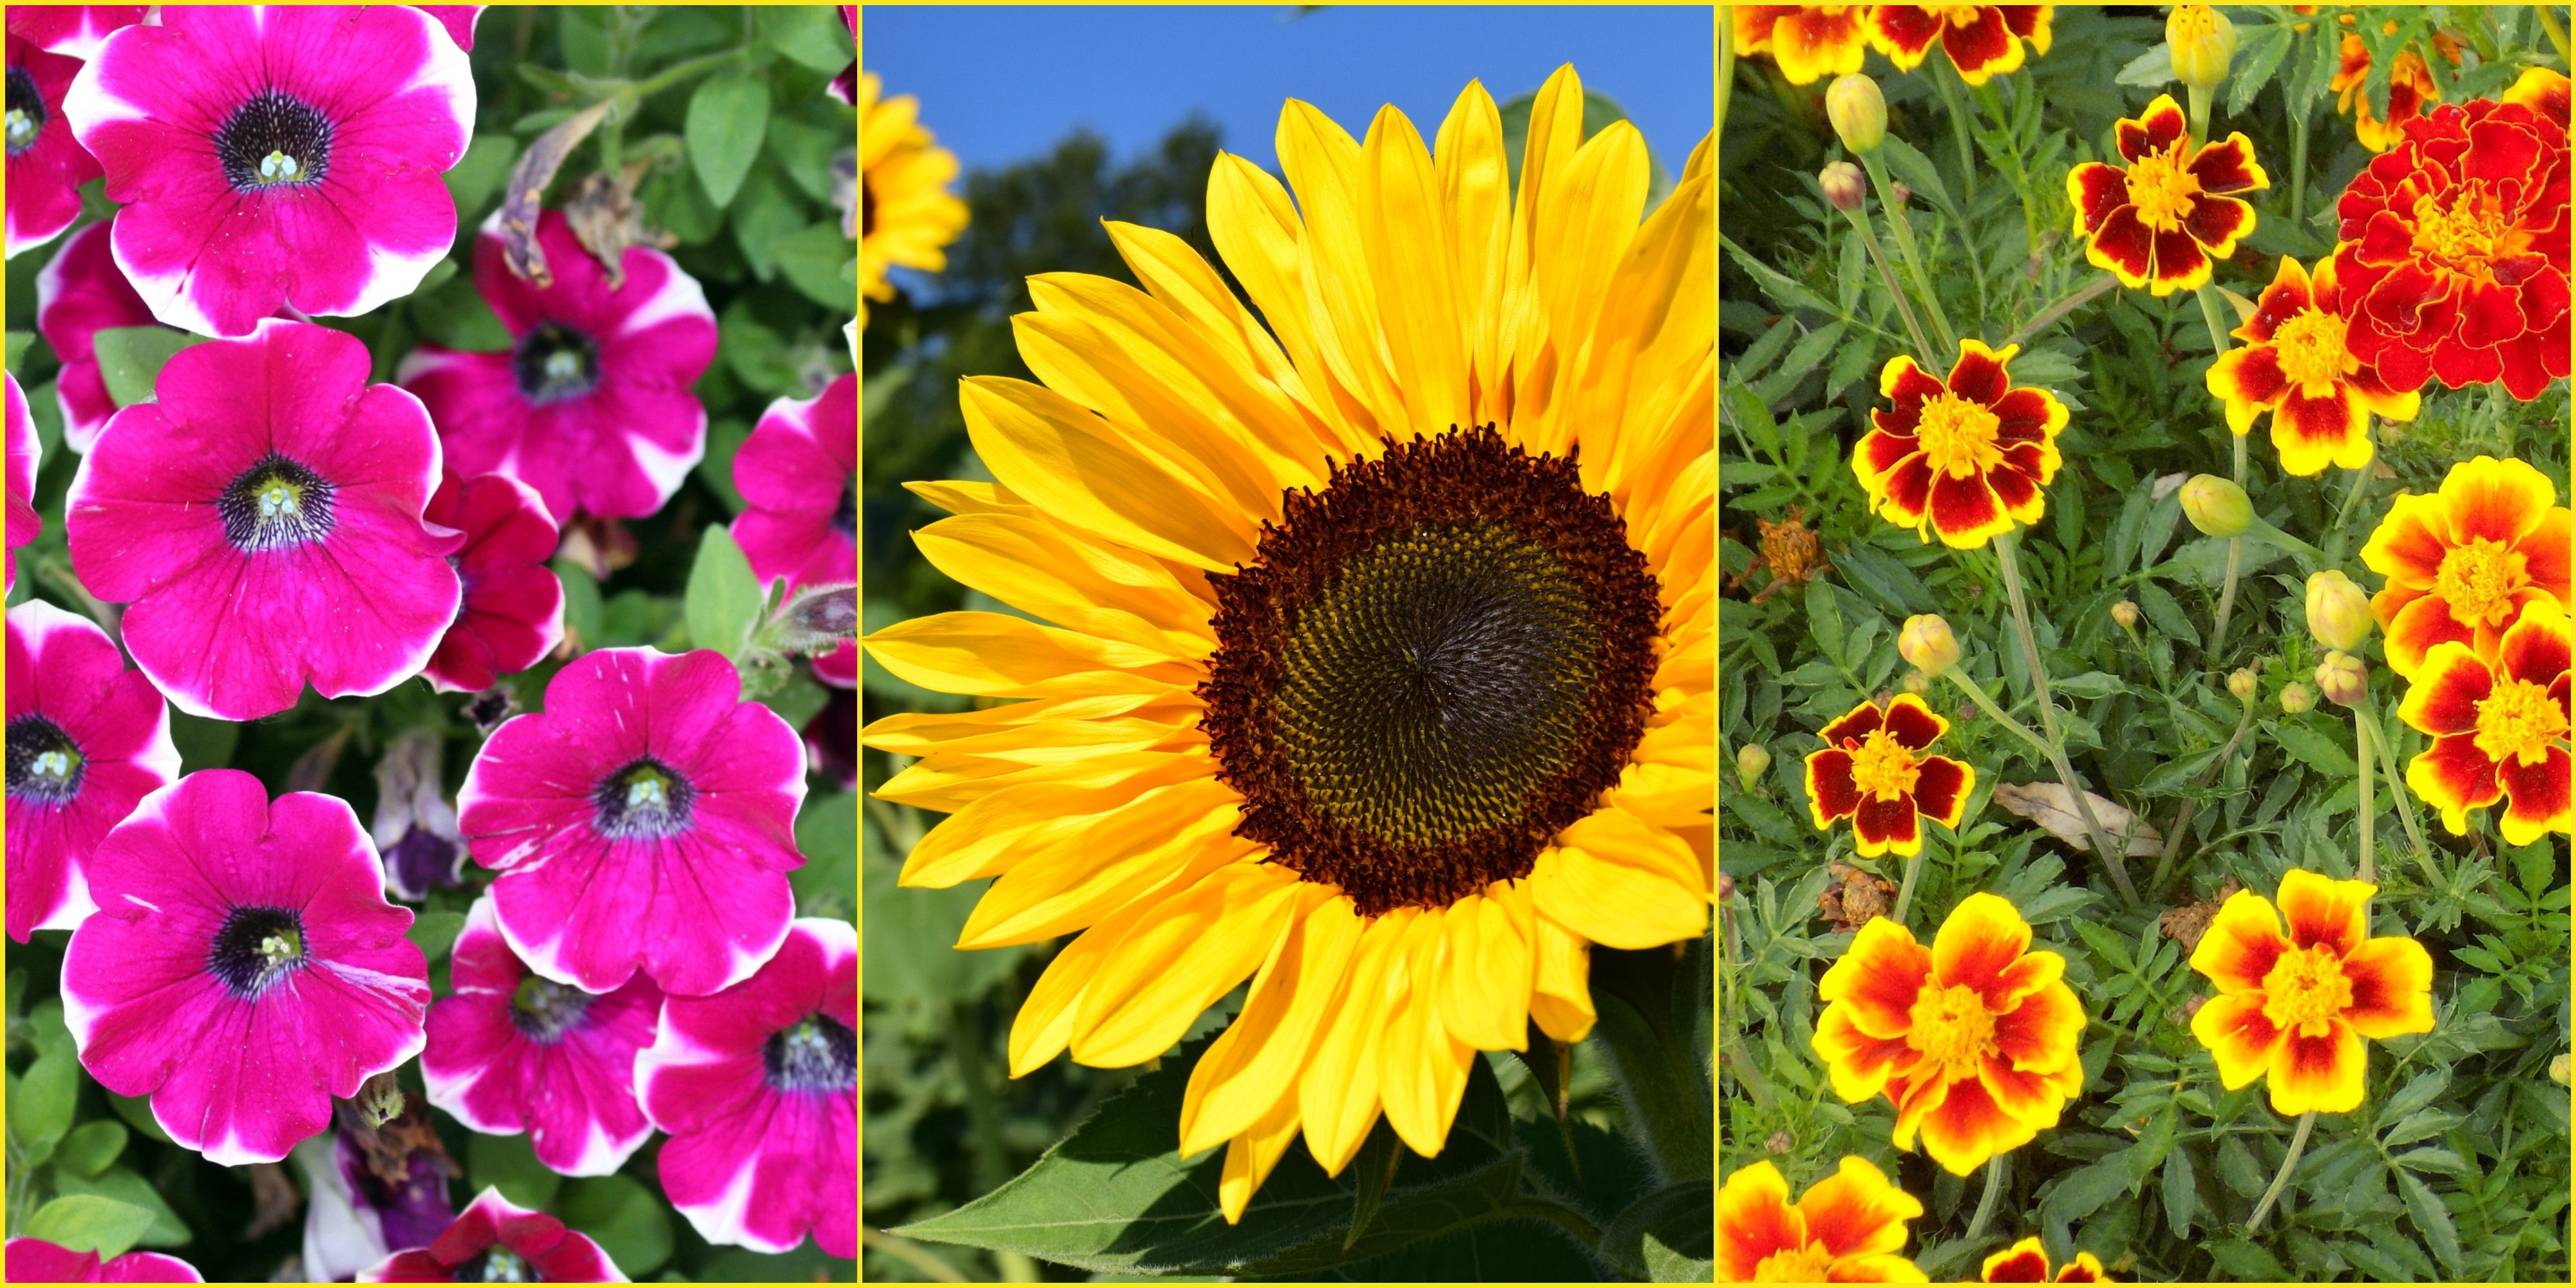 7 of the fastest growing flower seeds for your garden this summer 7 of the fastest growing flower seeds for your garden this summer best summer flower seeds izmirmasajfo